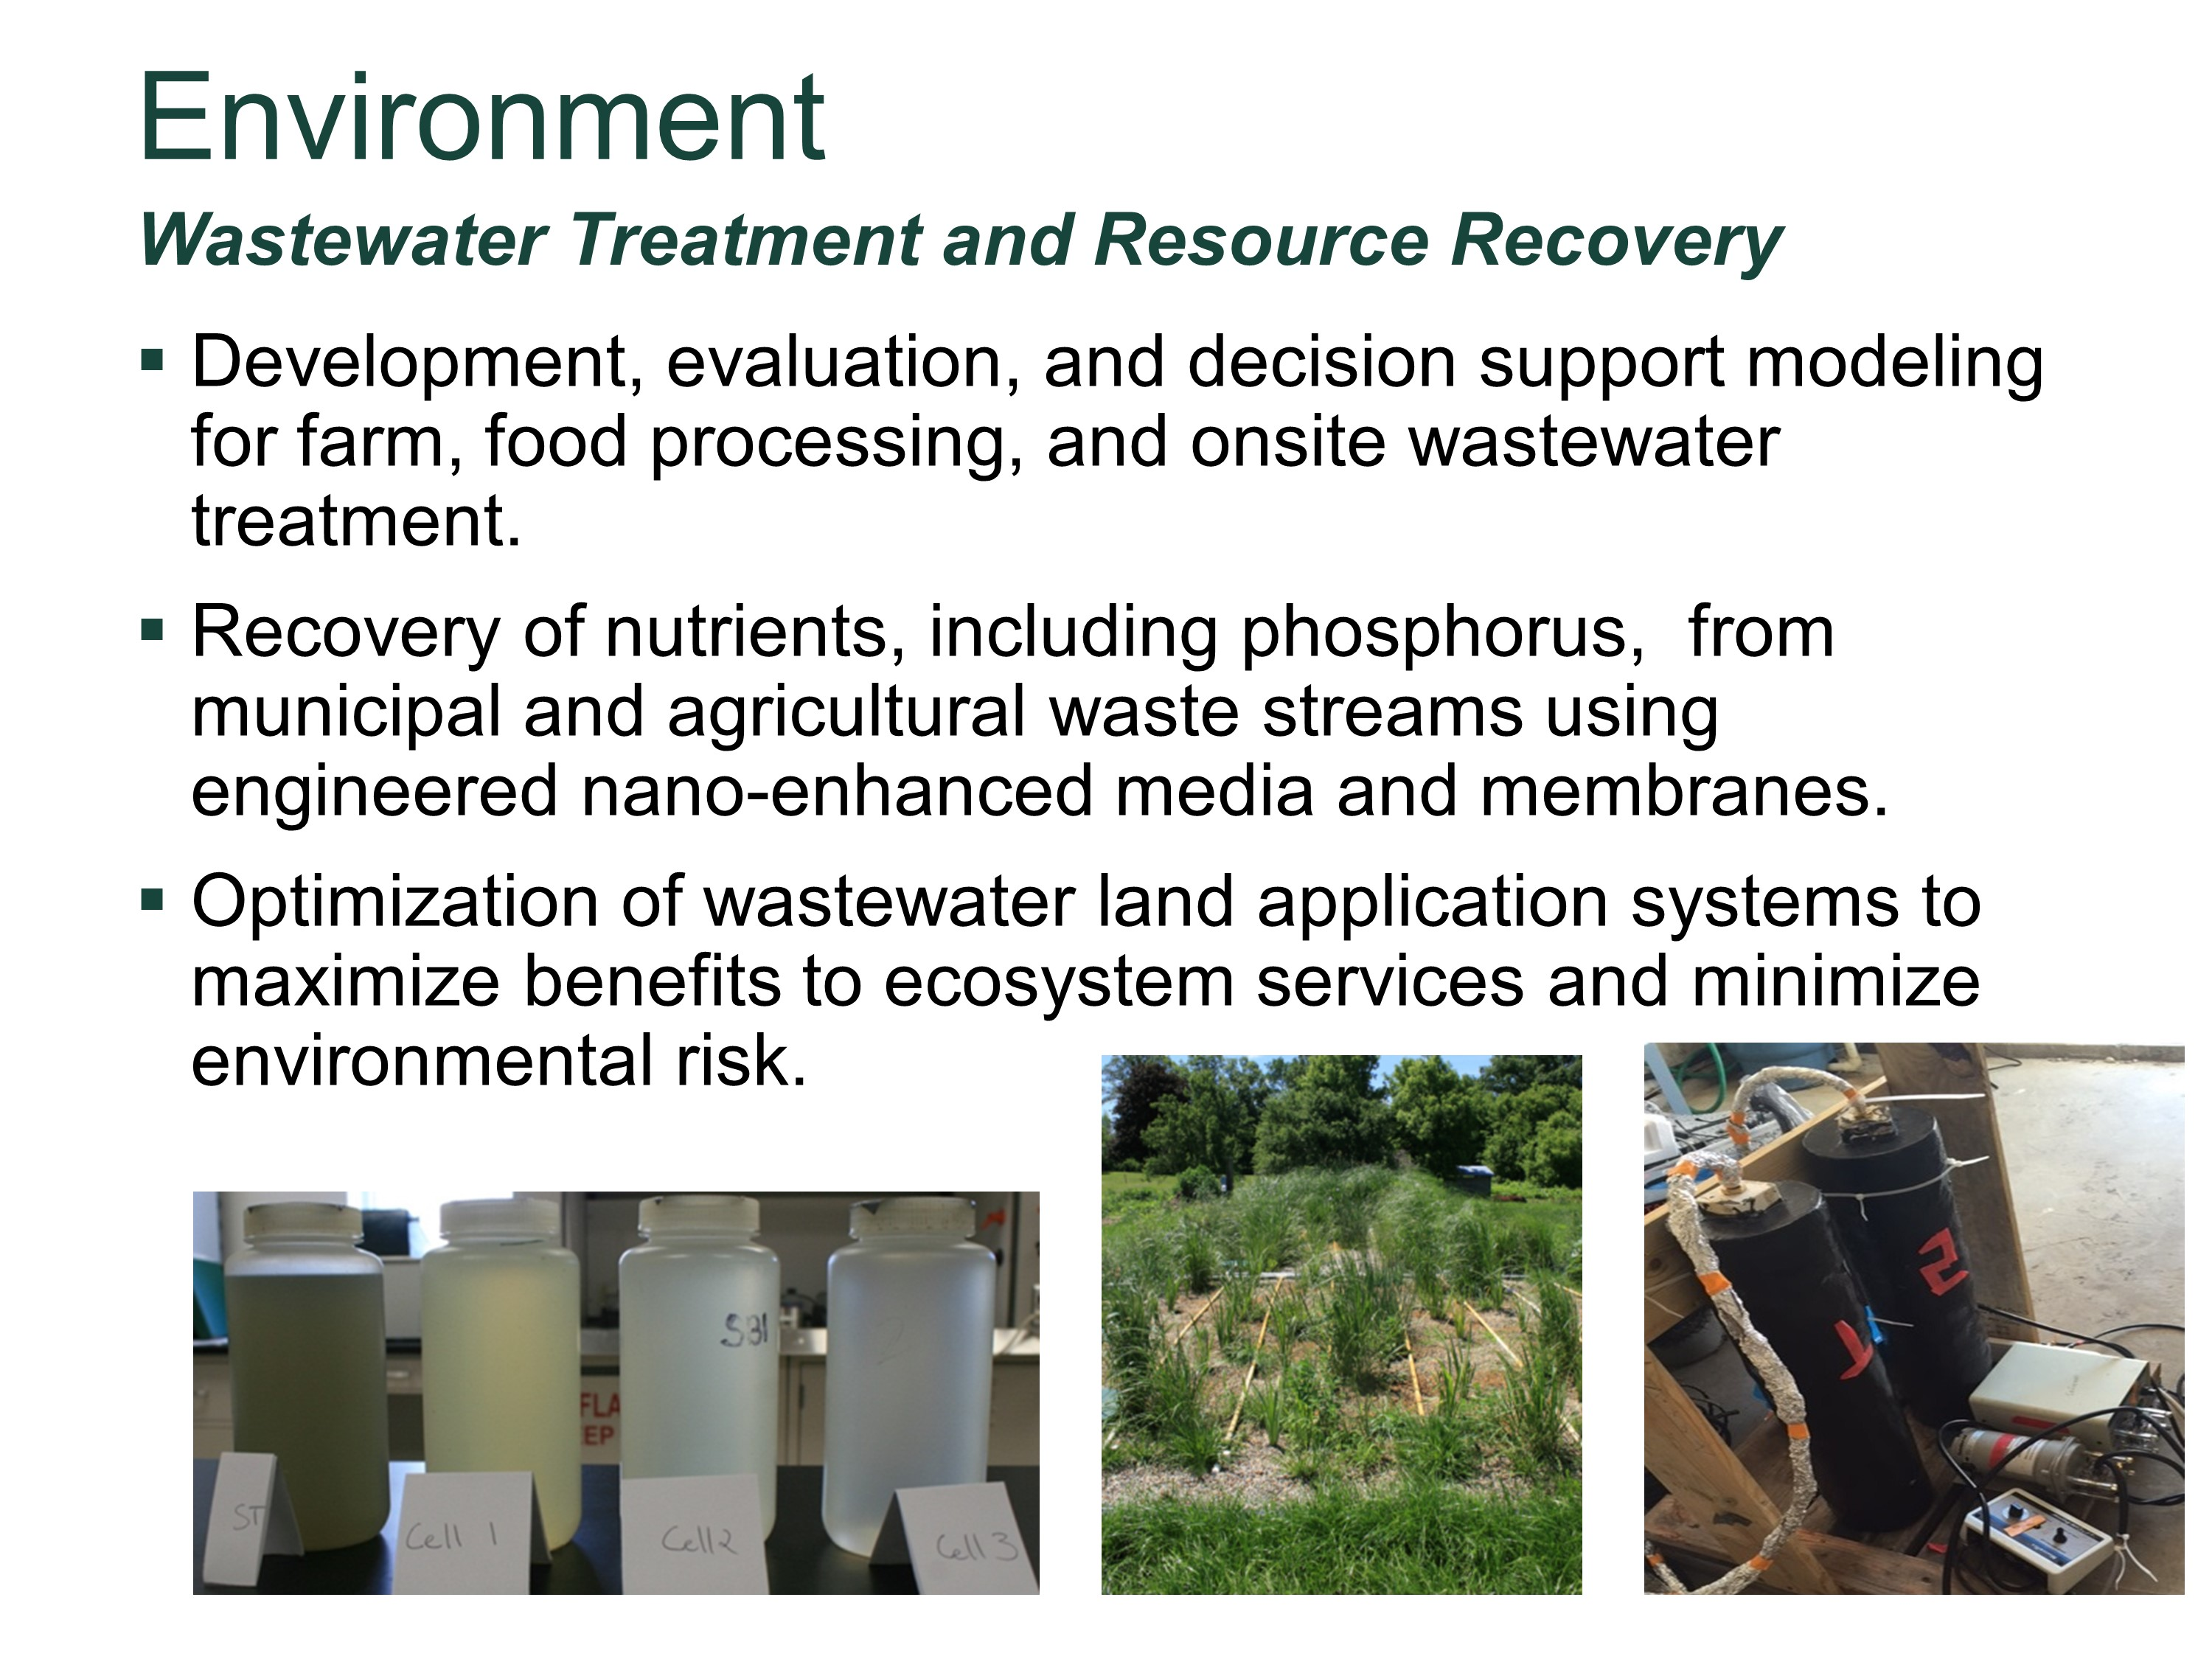 Wastewater Treatment and Resource Recovery